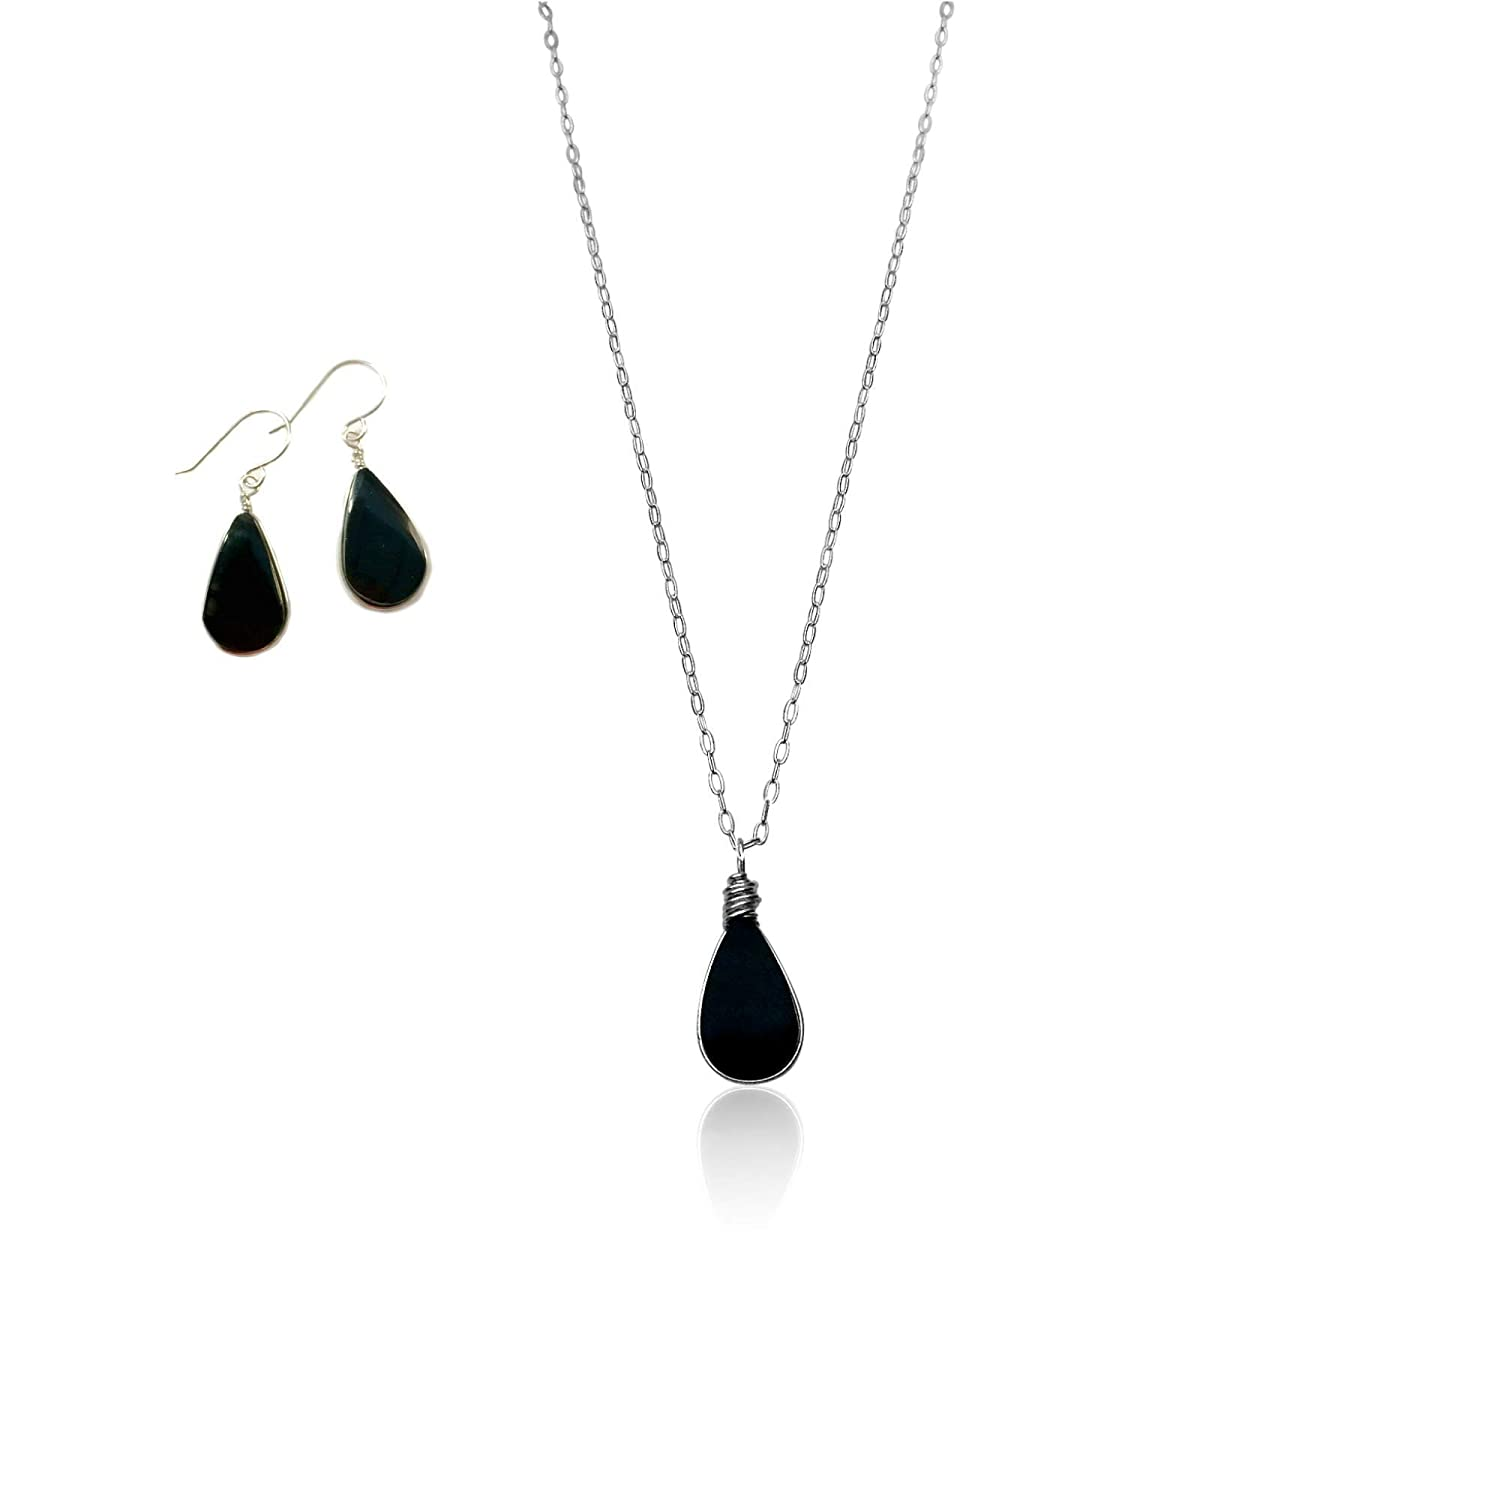 RUMI SUMAQ Black Obsidian Stone Necklace and Earring Set for Women: Dainty Sterling Silver Jewelry Gift Set